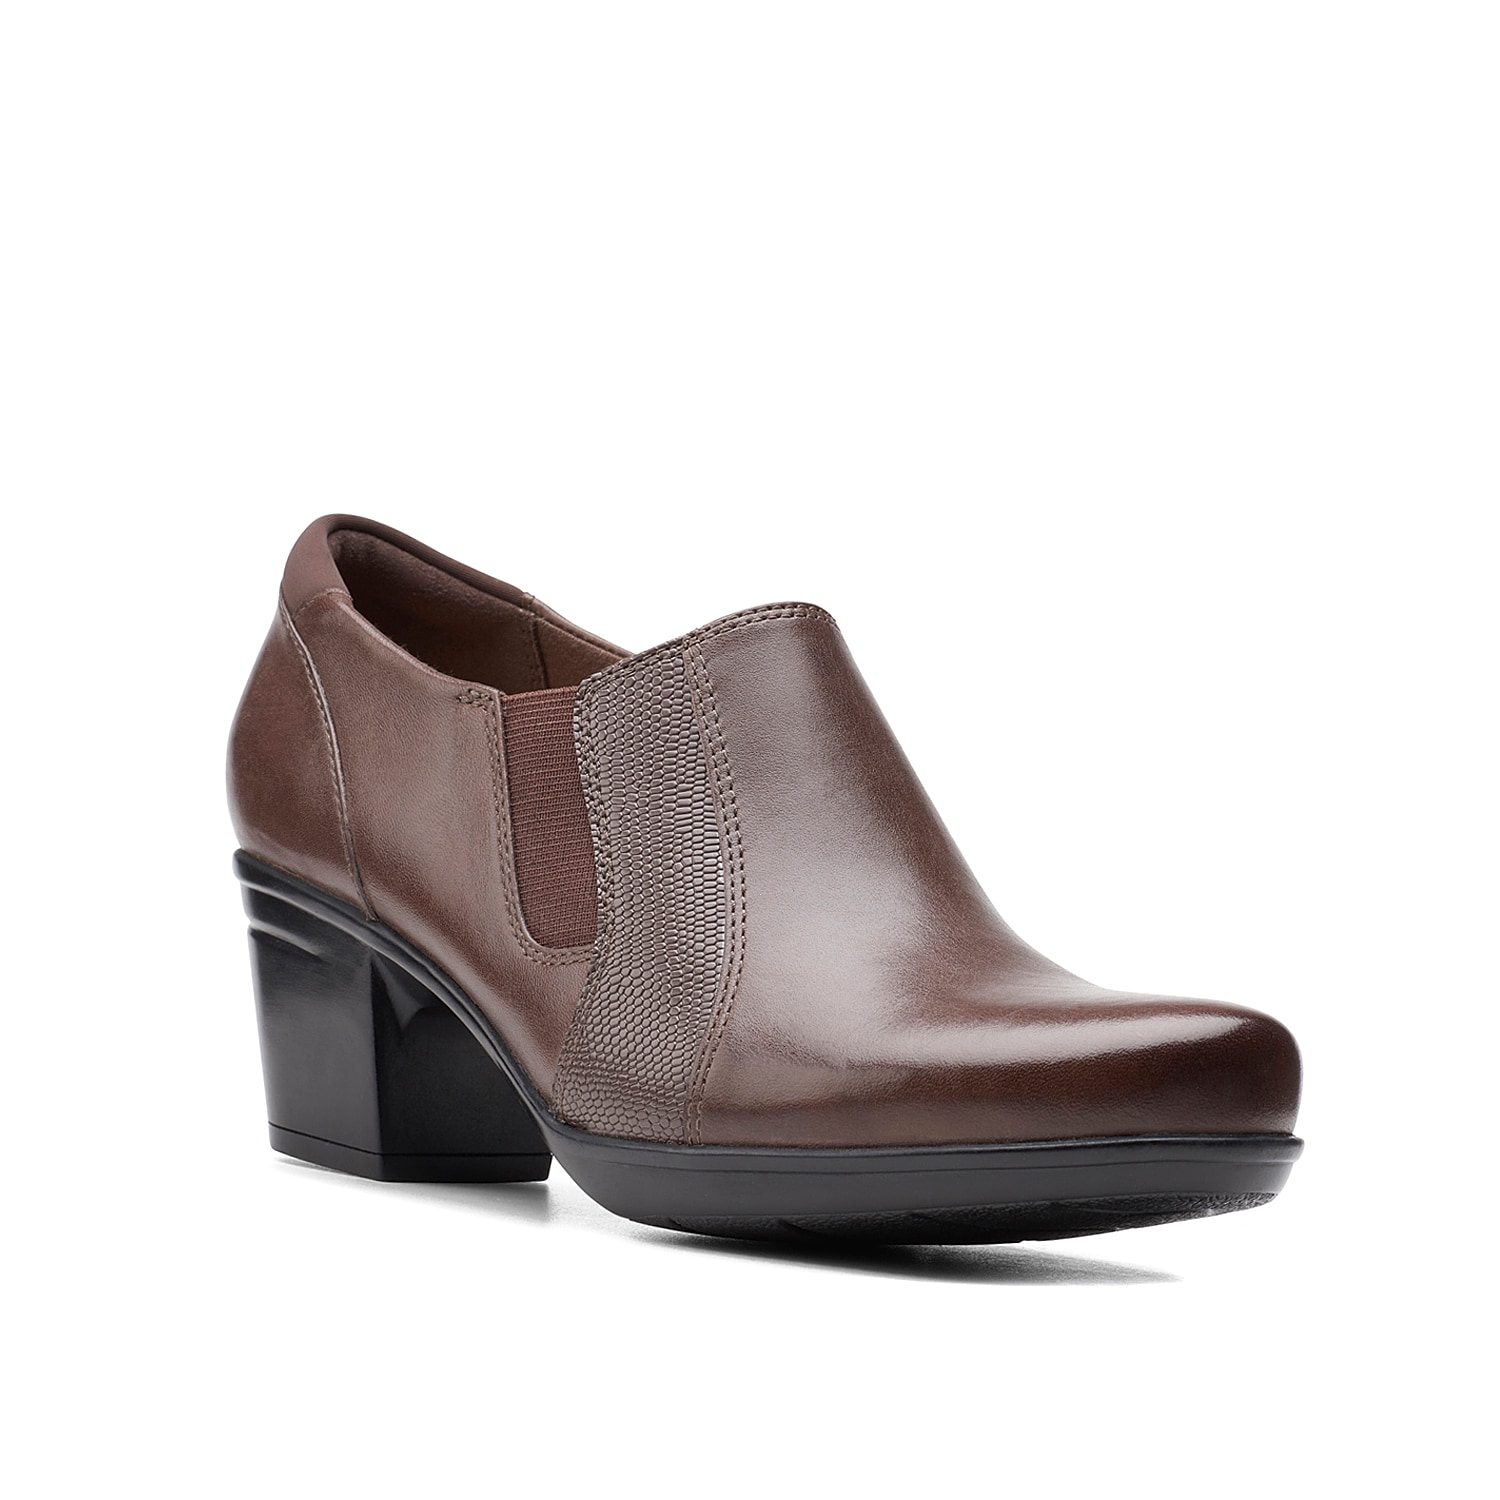 Stay minimal and posh at the same time donning the Clarks of England Emslie Chelsea bootie. Comprising premium leather construction and flexible elastic gores, this bootie has Ultimate Comfort for improved cushioning all day.